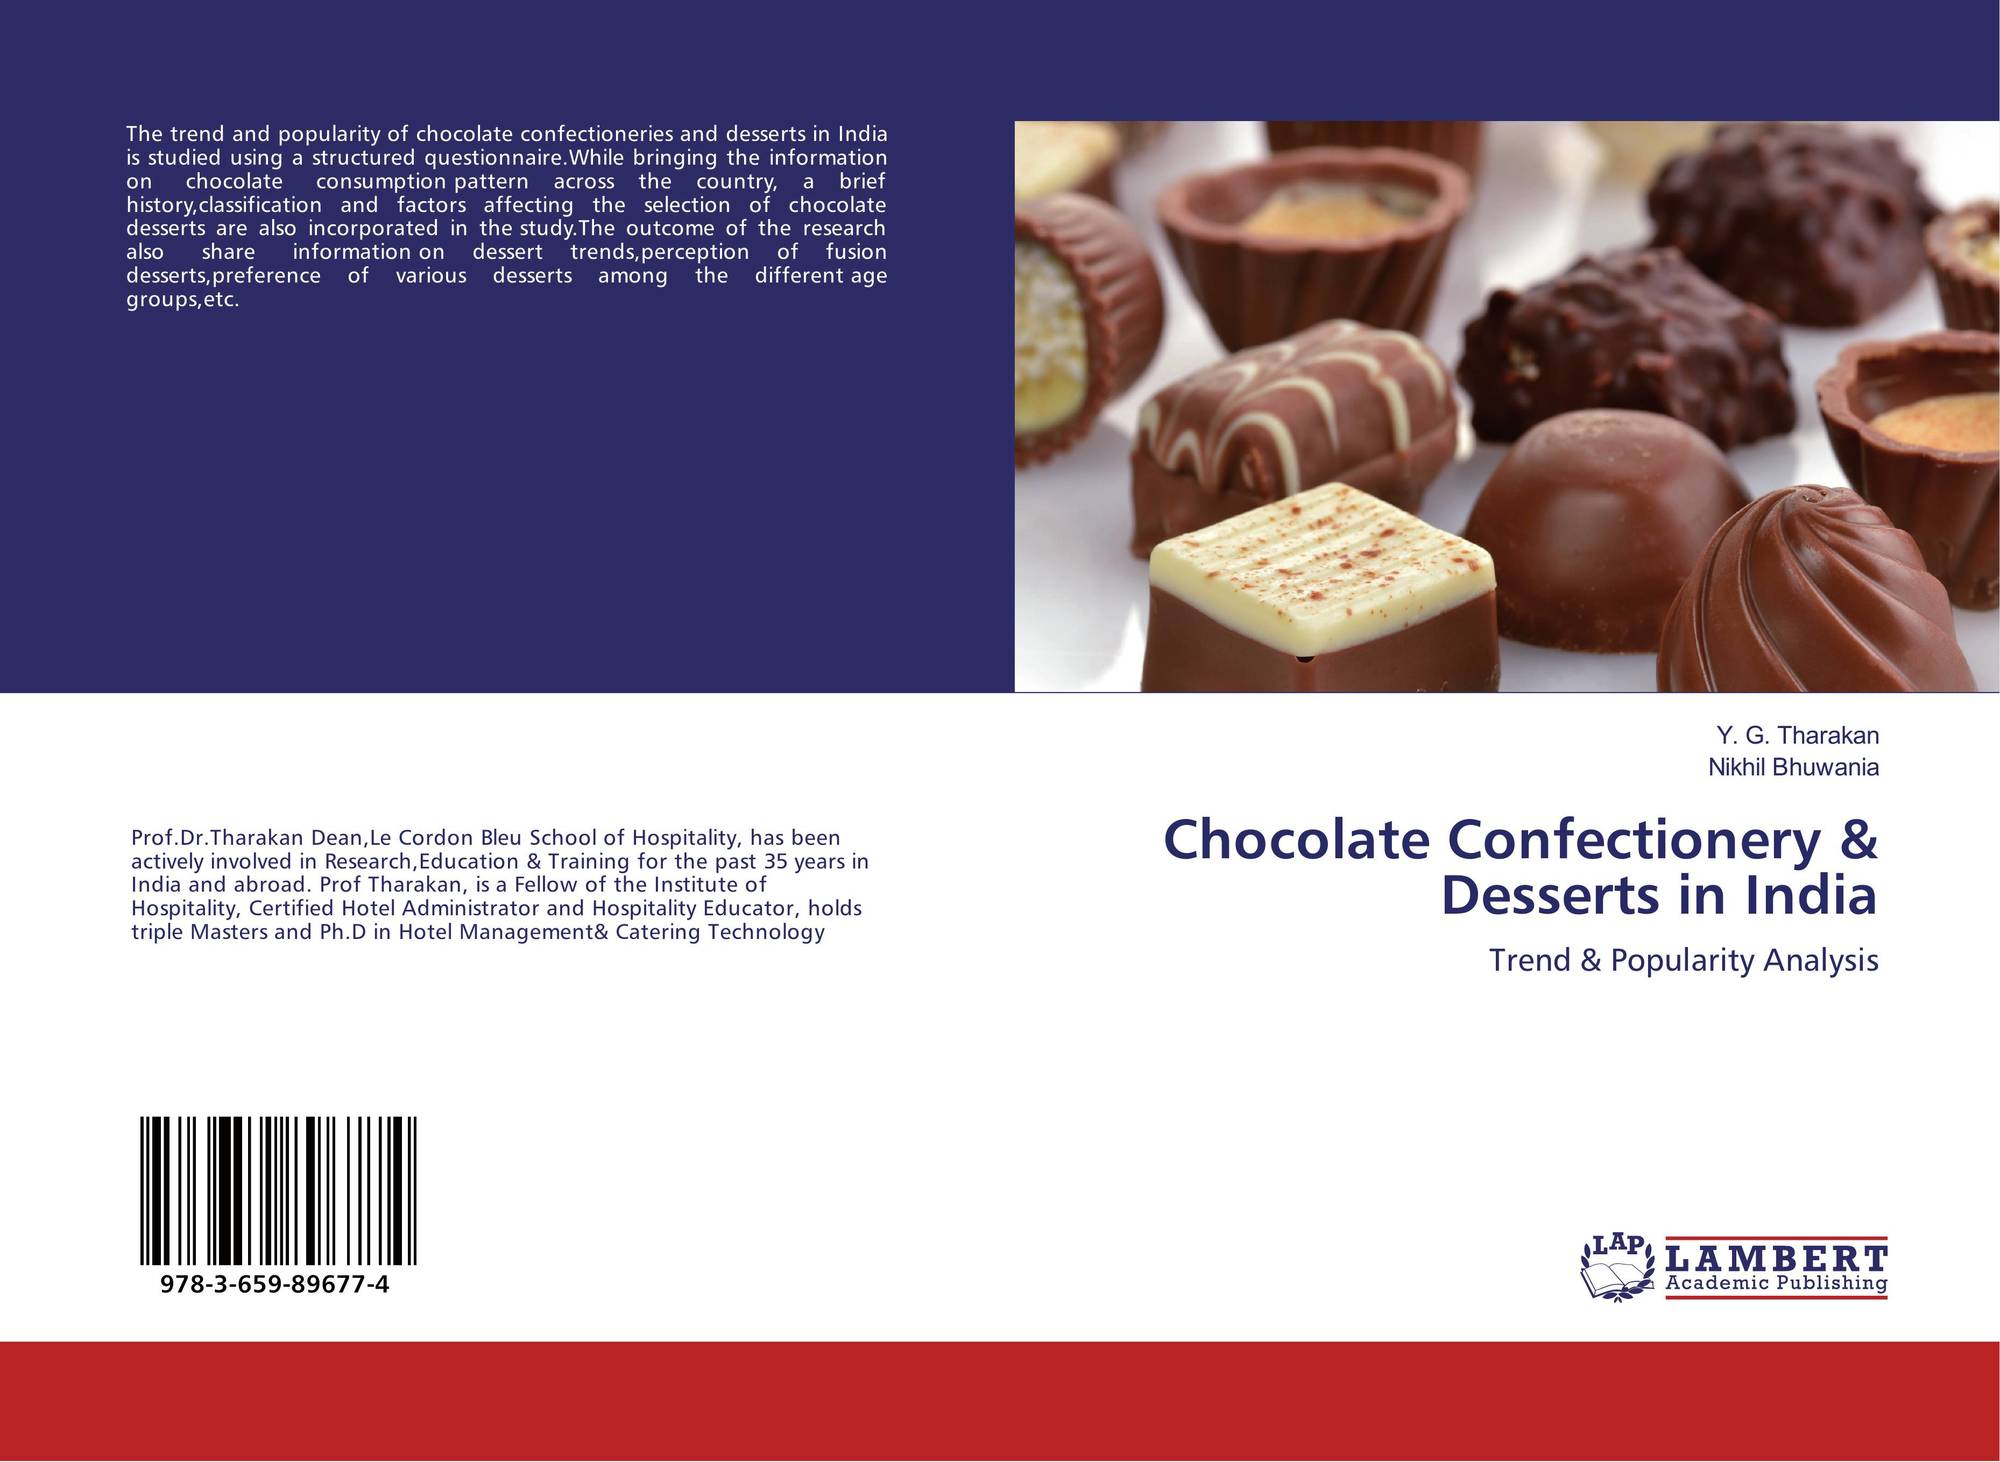 analysis of theo chocolates strategy Theo chocolate - download as powerpoint presentation (ppt / pptx), pdf file (pdf), text file (txt) or view presentation slides online.